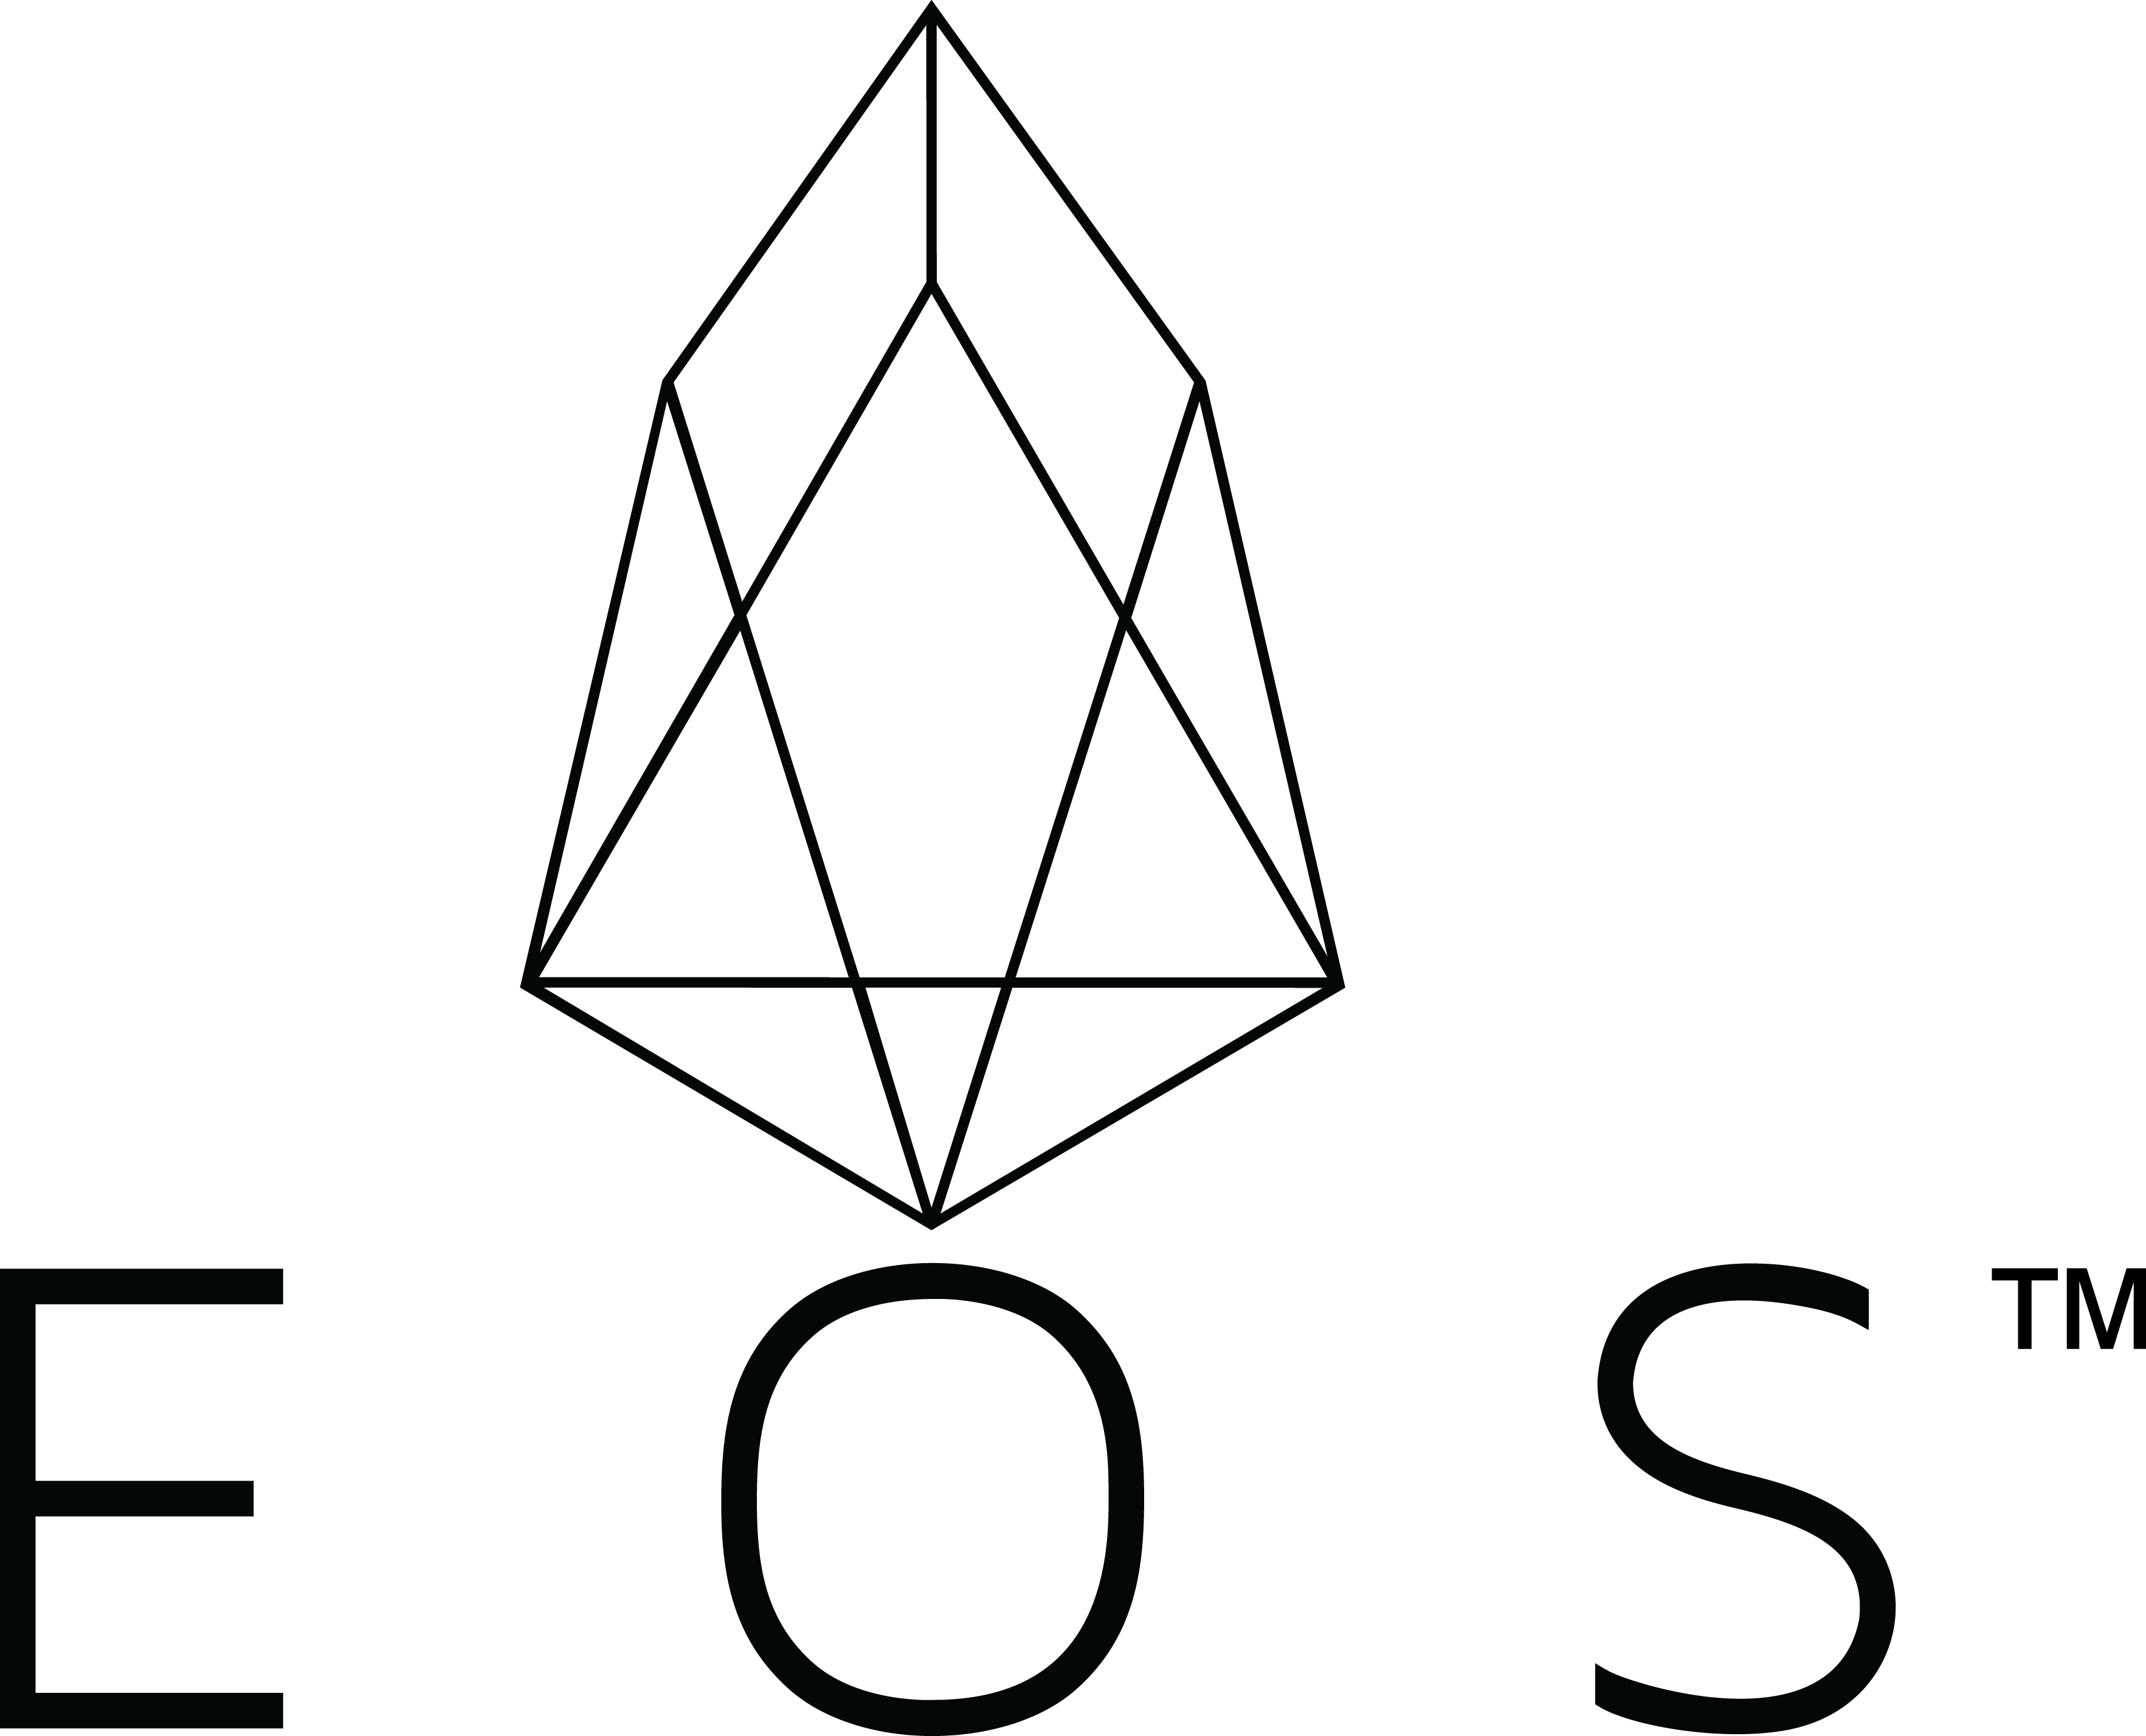 Eos logo clipart graphic library download EOS Logo Vector EPS Free Download, Logo, Icons, Clipart | Tattoos graphic library download